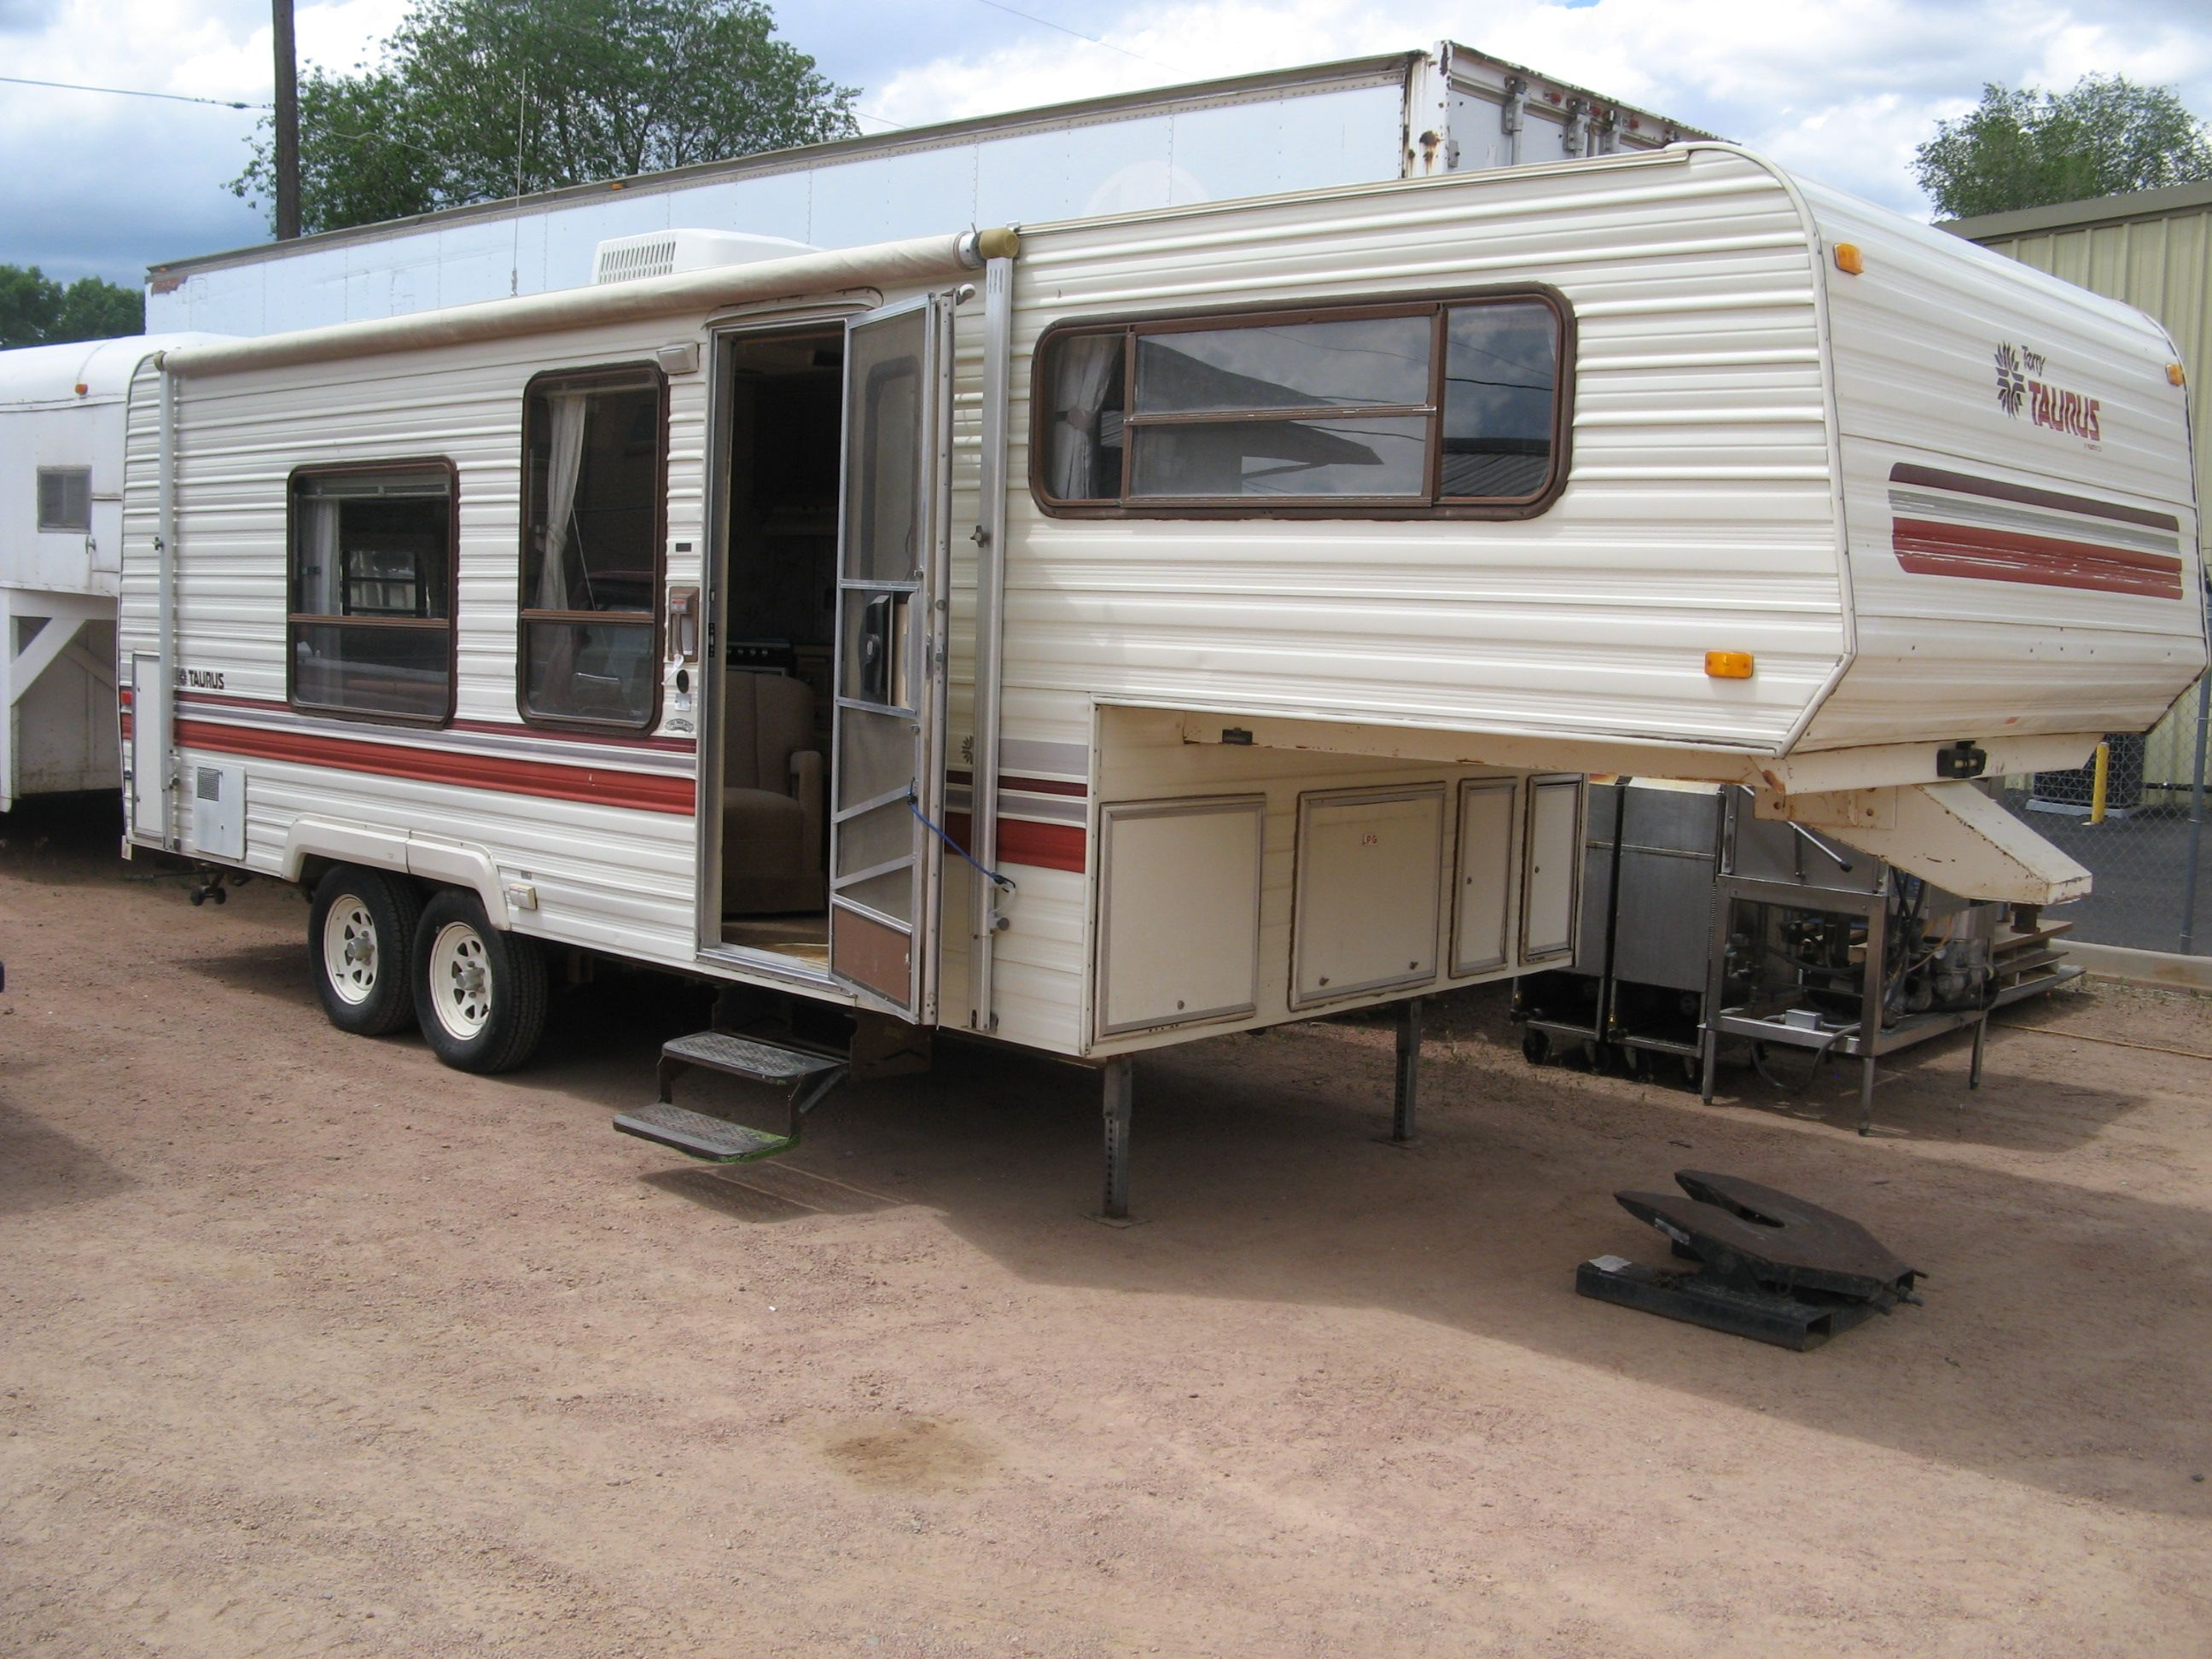 1987 Fleetwood Taurus Fifth Wheel Camper